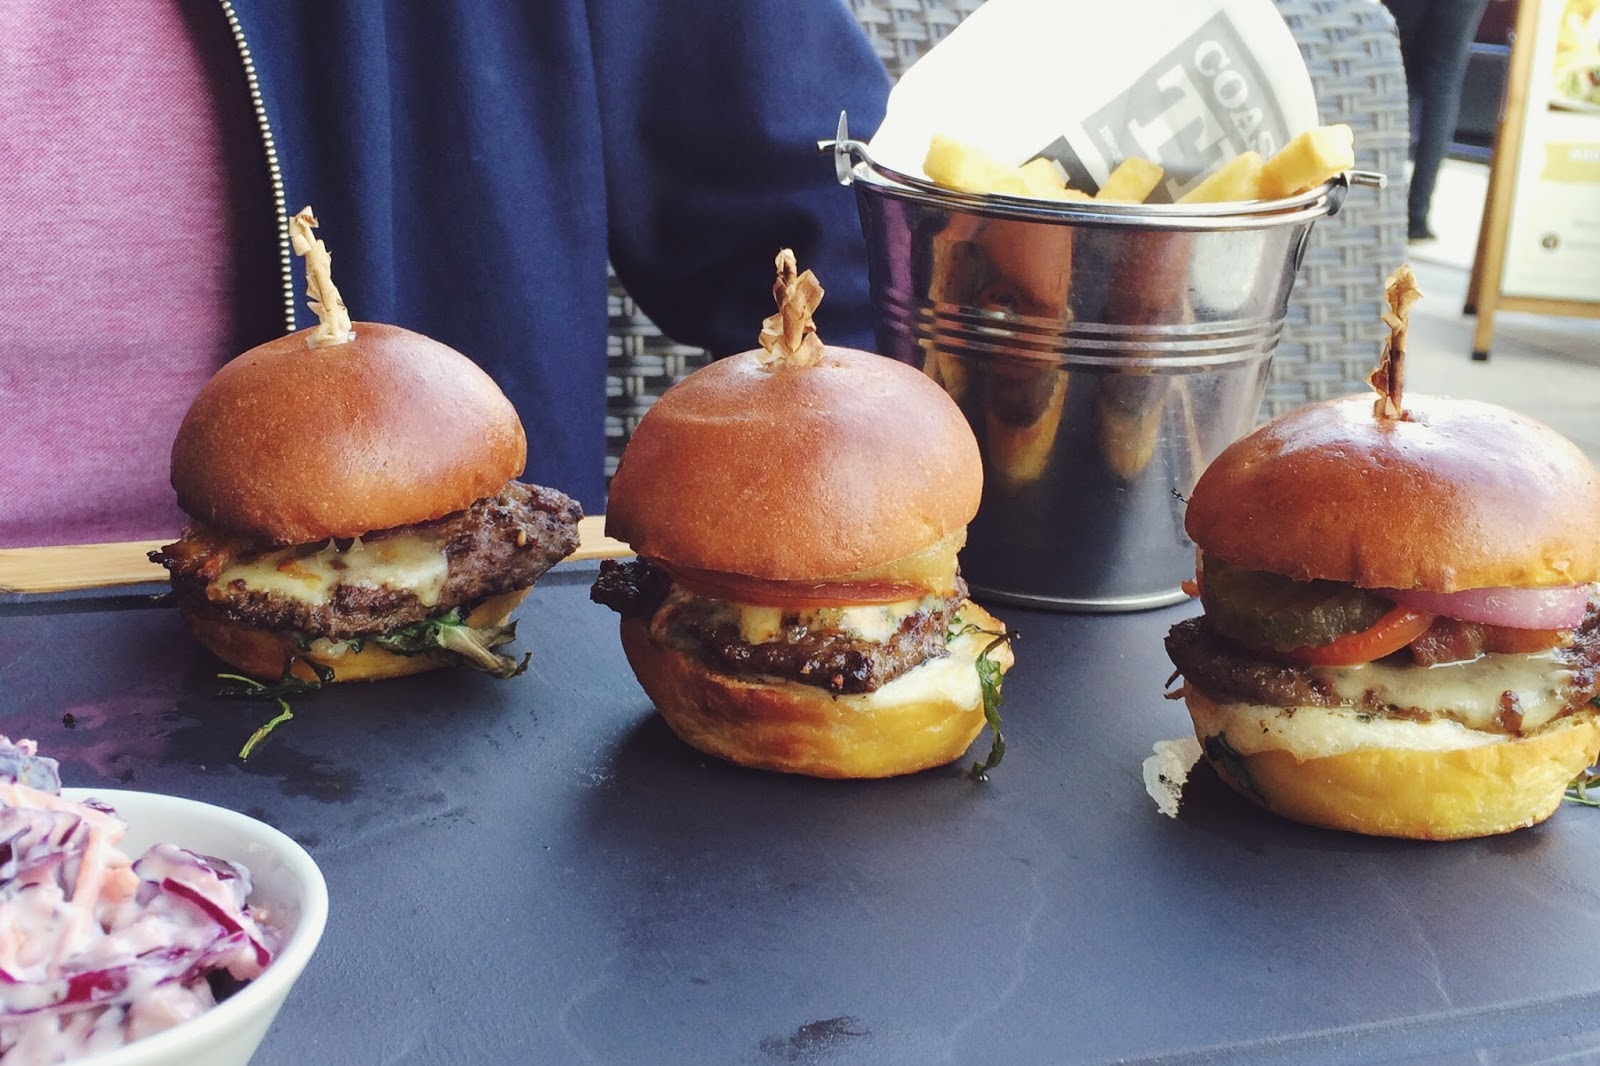 If you find yourself in Portsmouth and suddenly fancy some amazing American style food, then visit Coast to Coast: from blue cheese burgers to spicy chicken wings, you won't be disappointed.